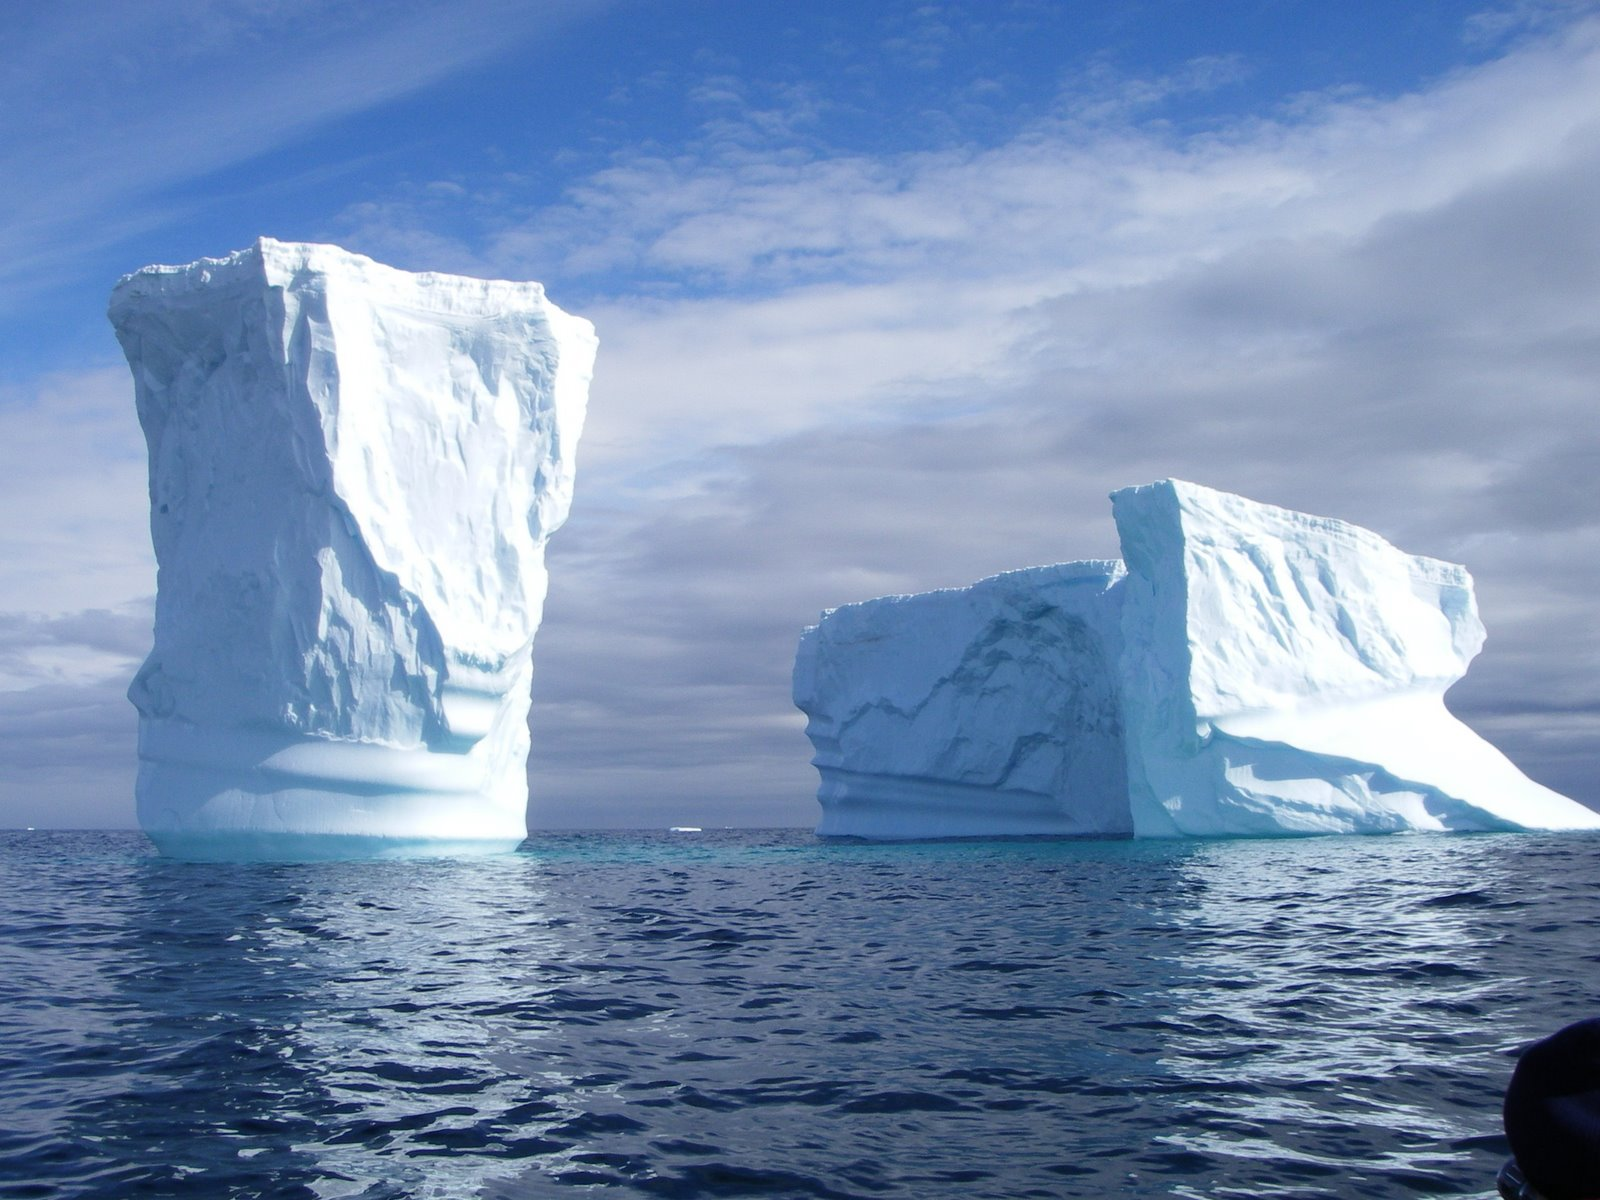 Antarctica_Islands_icebergs.jpg